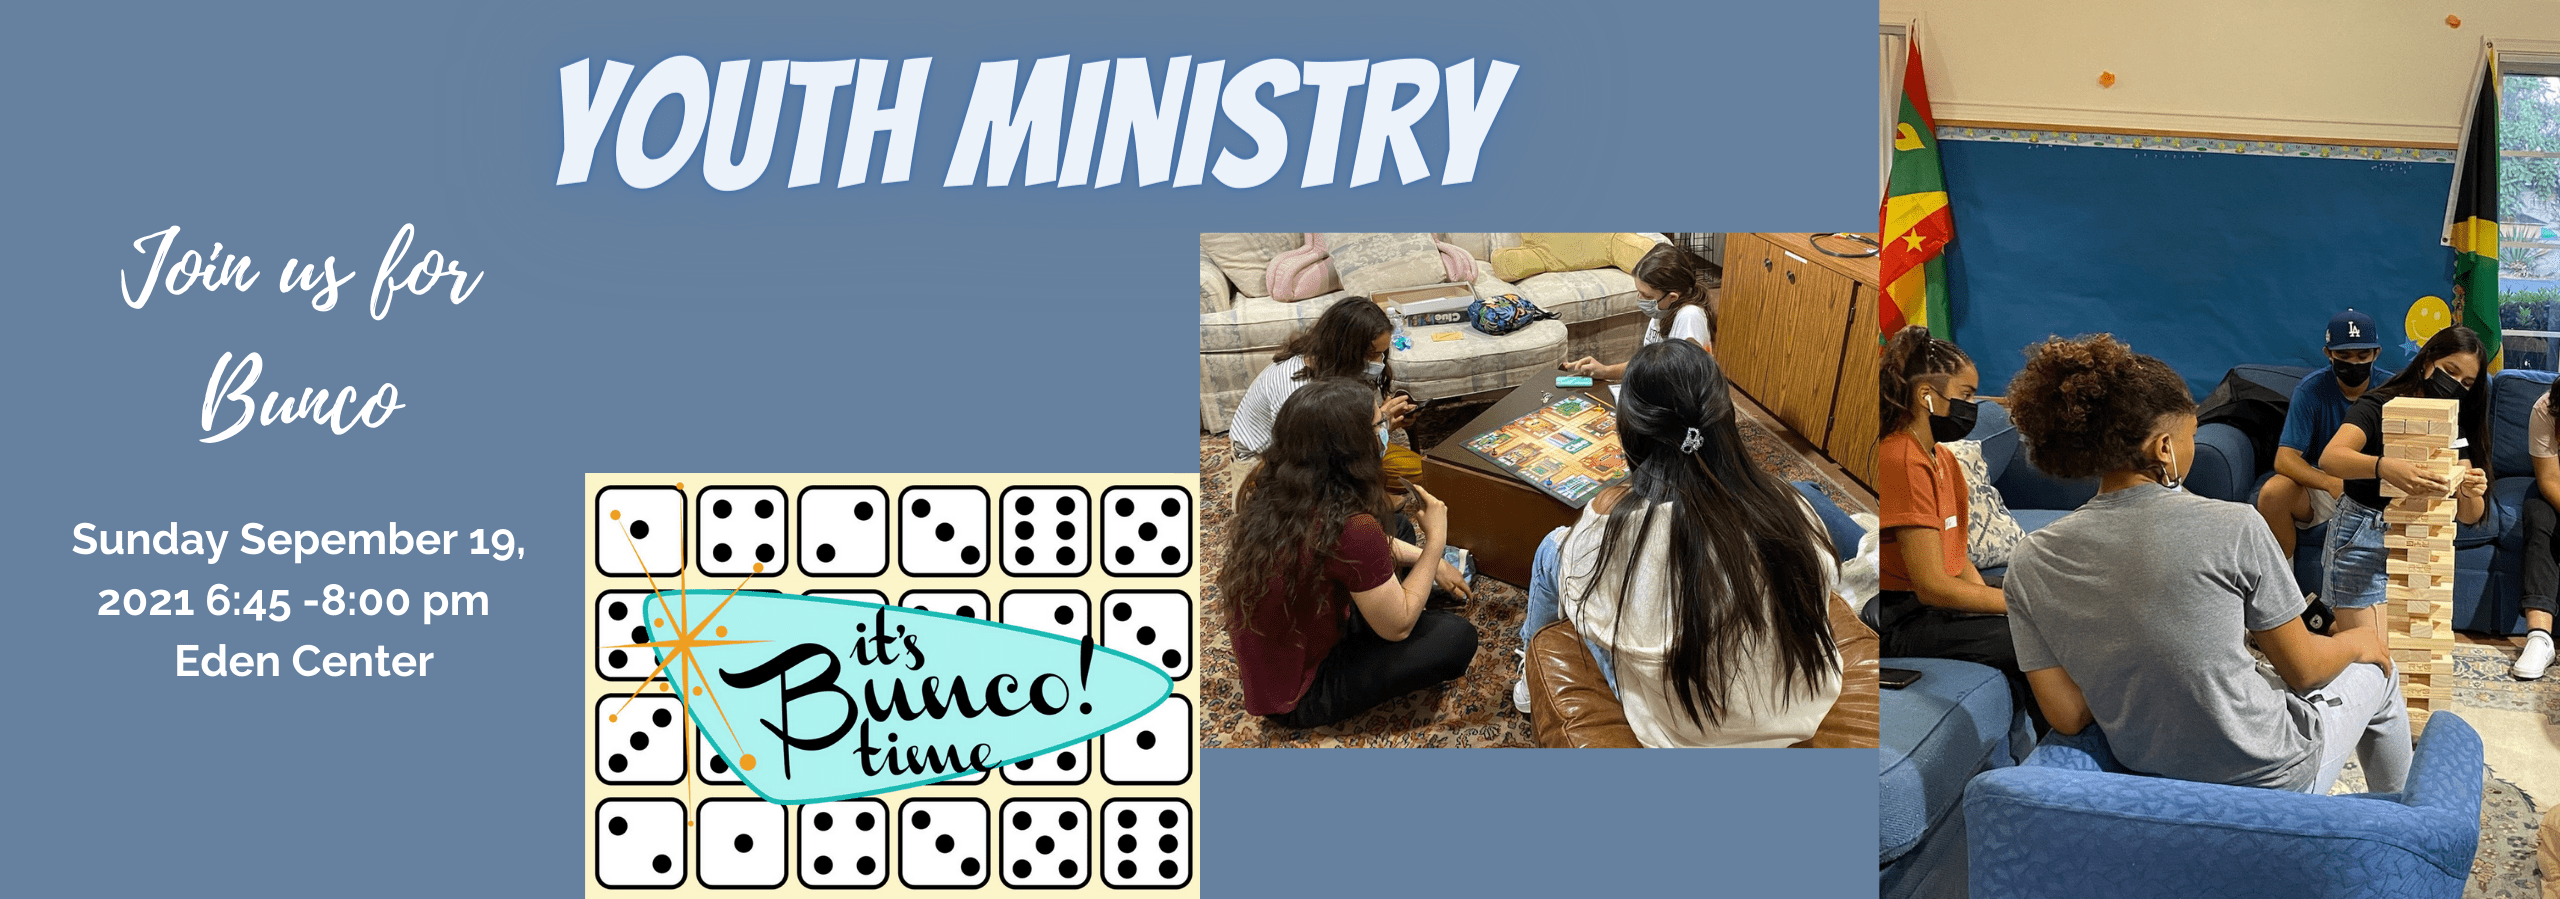 Youth Ministry BUnco Banner